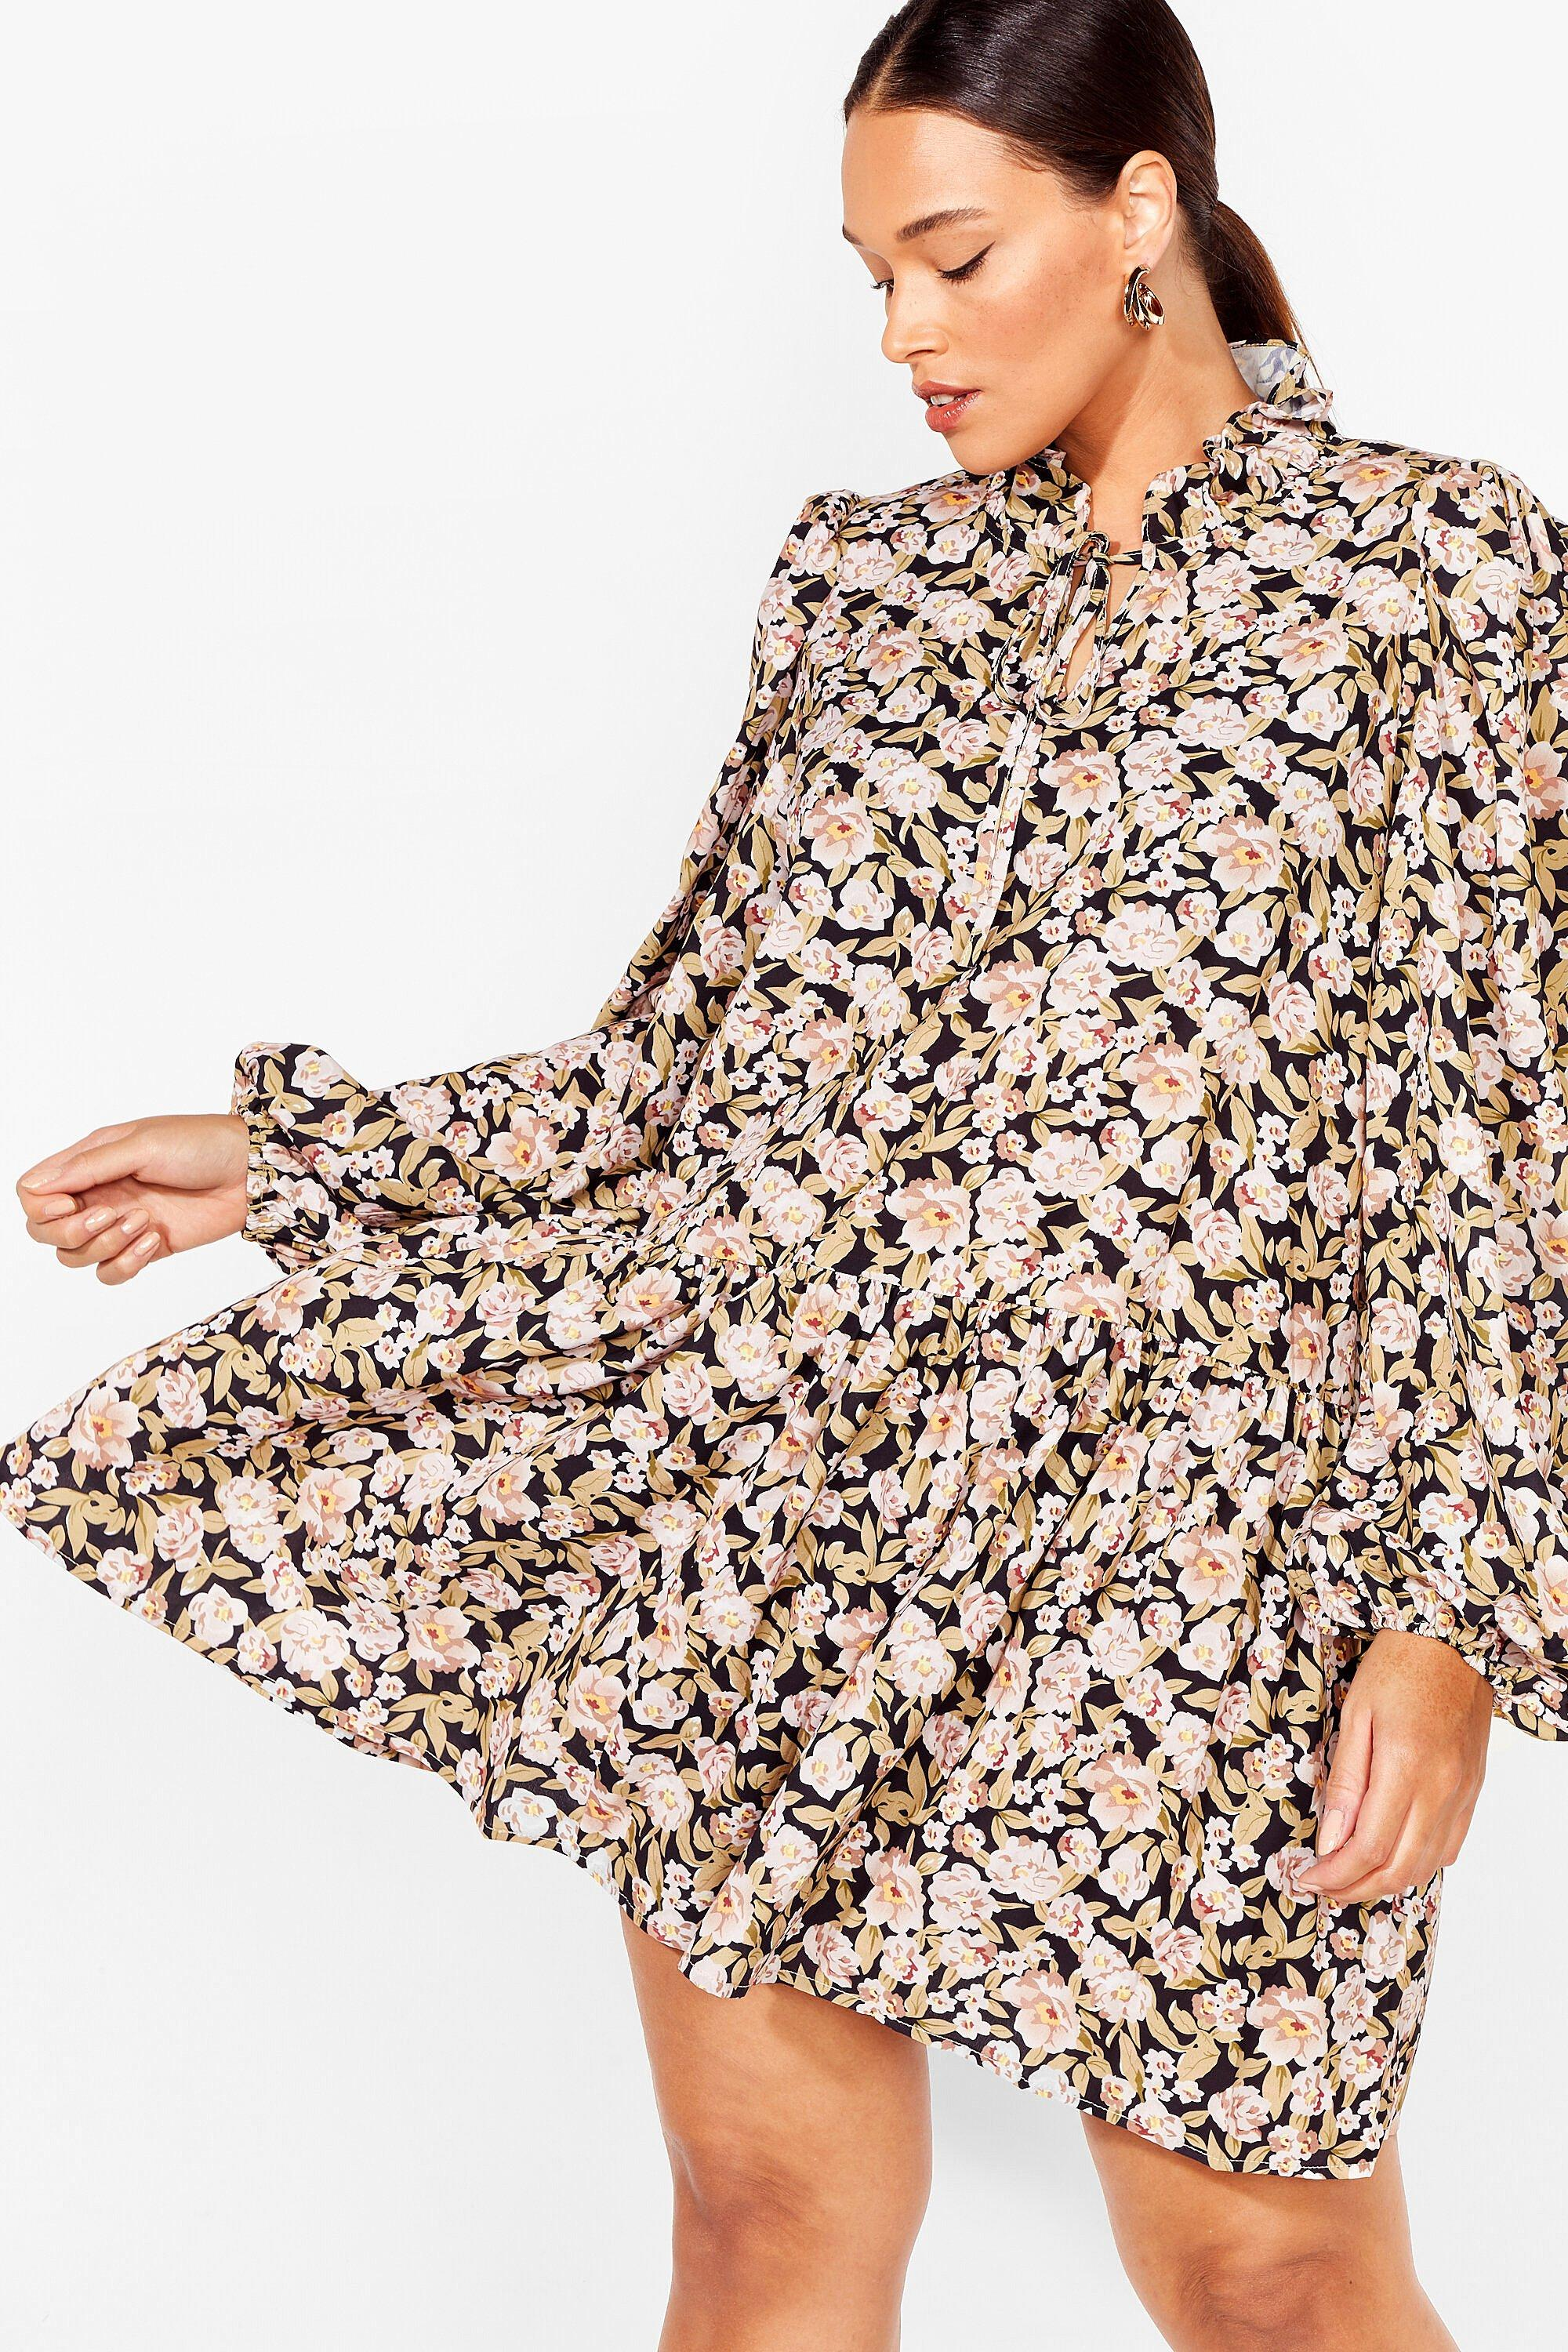 Smock 'Em All Plus Floral Dress 15